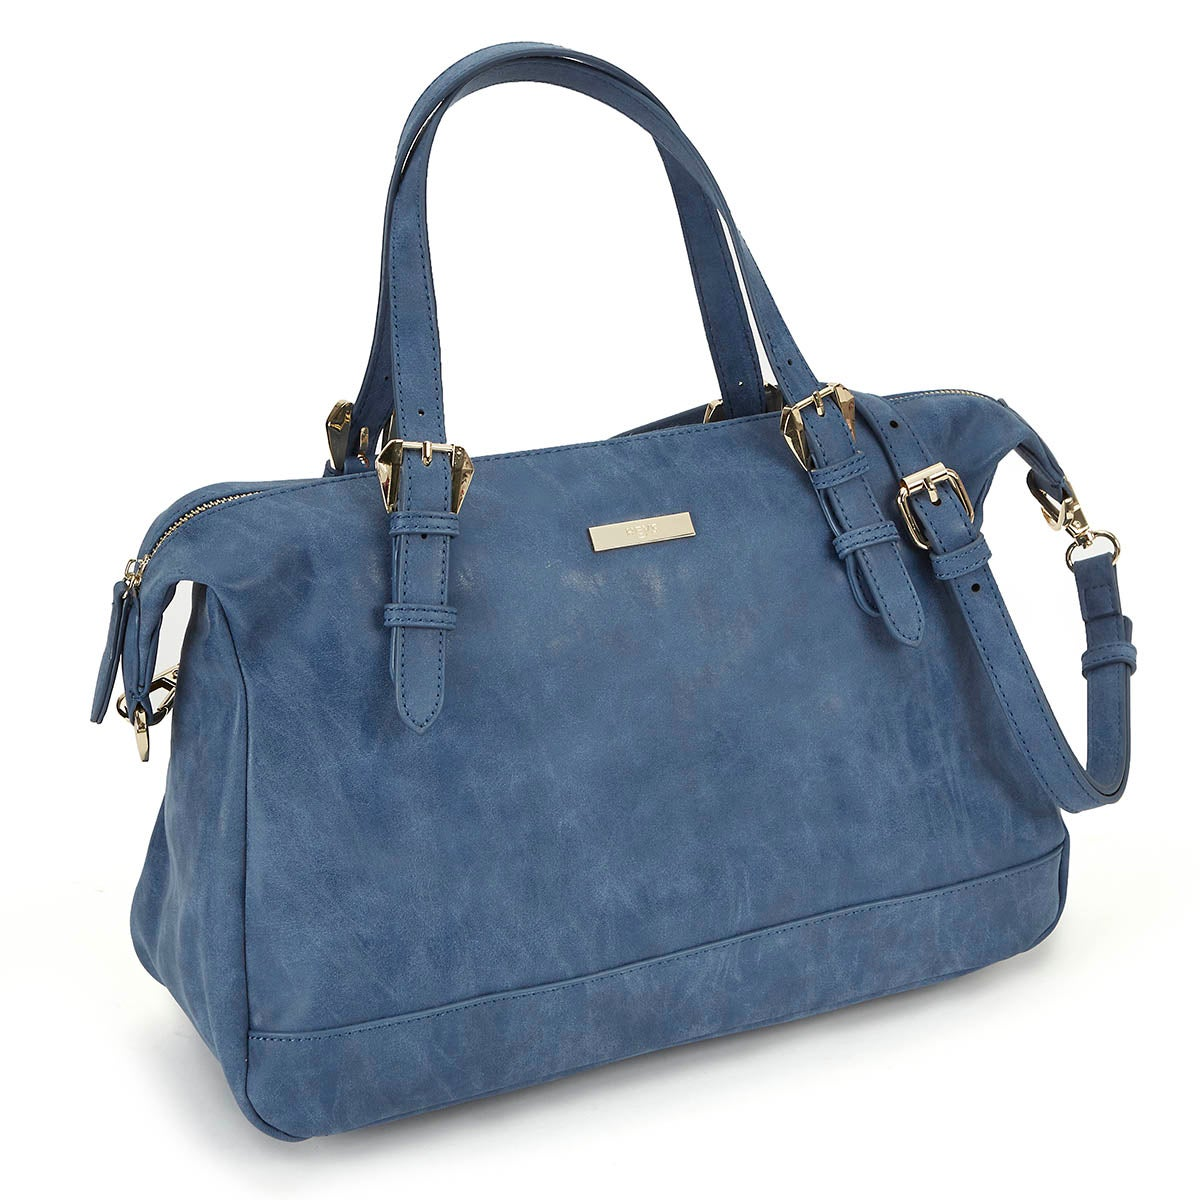 Lds Vintage denim blue satchel